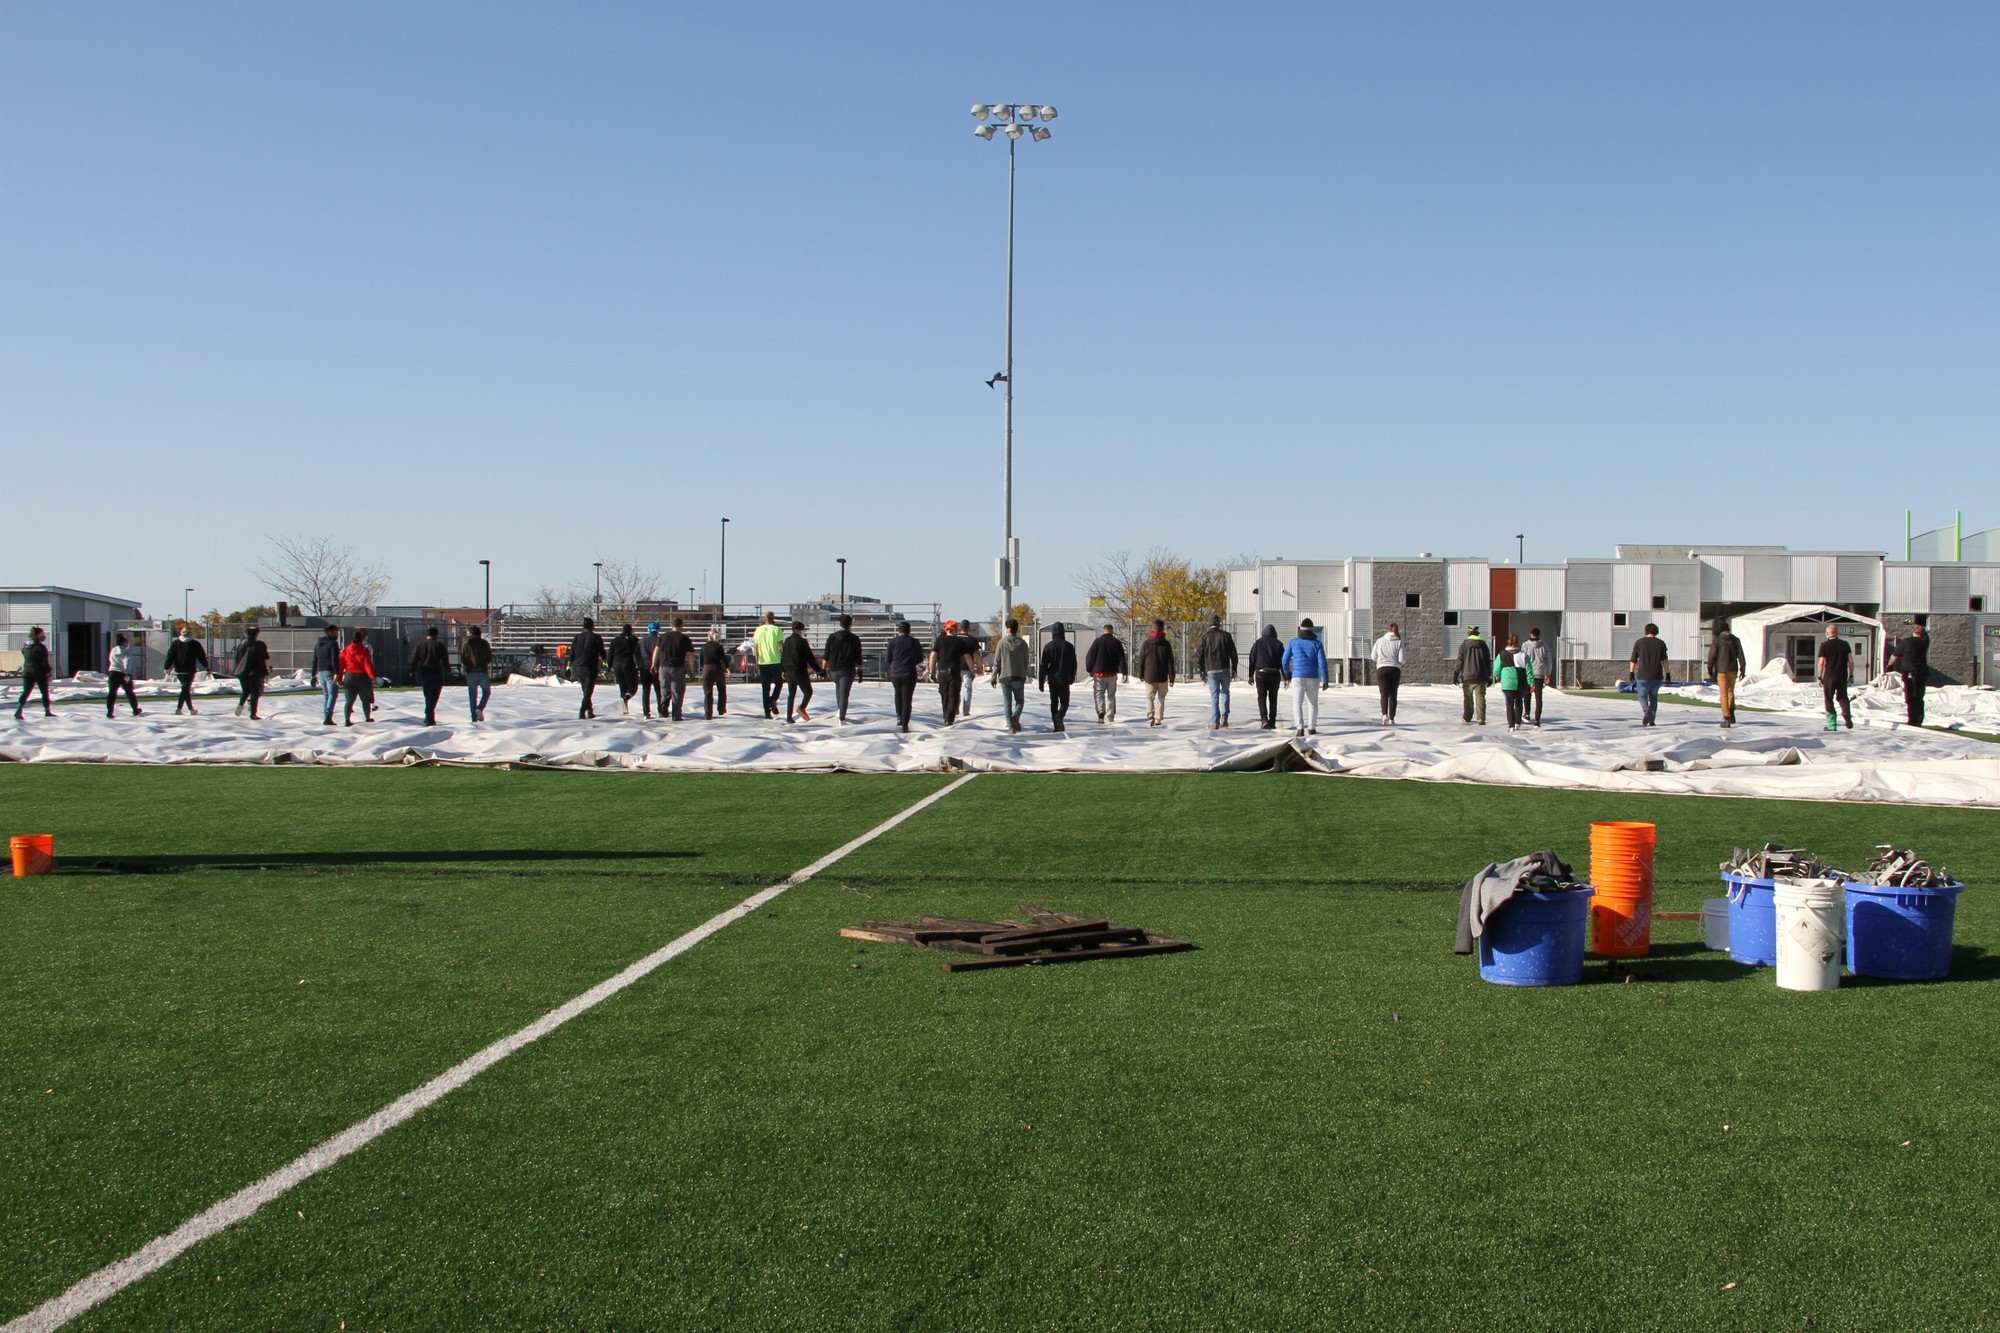 """""""I think Saturday went incredibly well. We were under staffed, but we made it work,"""" said Jenny Duval, sports facility operator and event coordinator."""